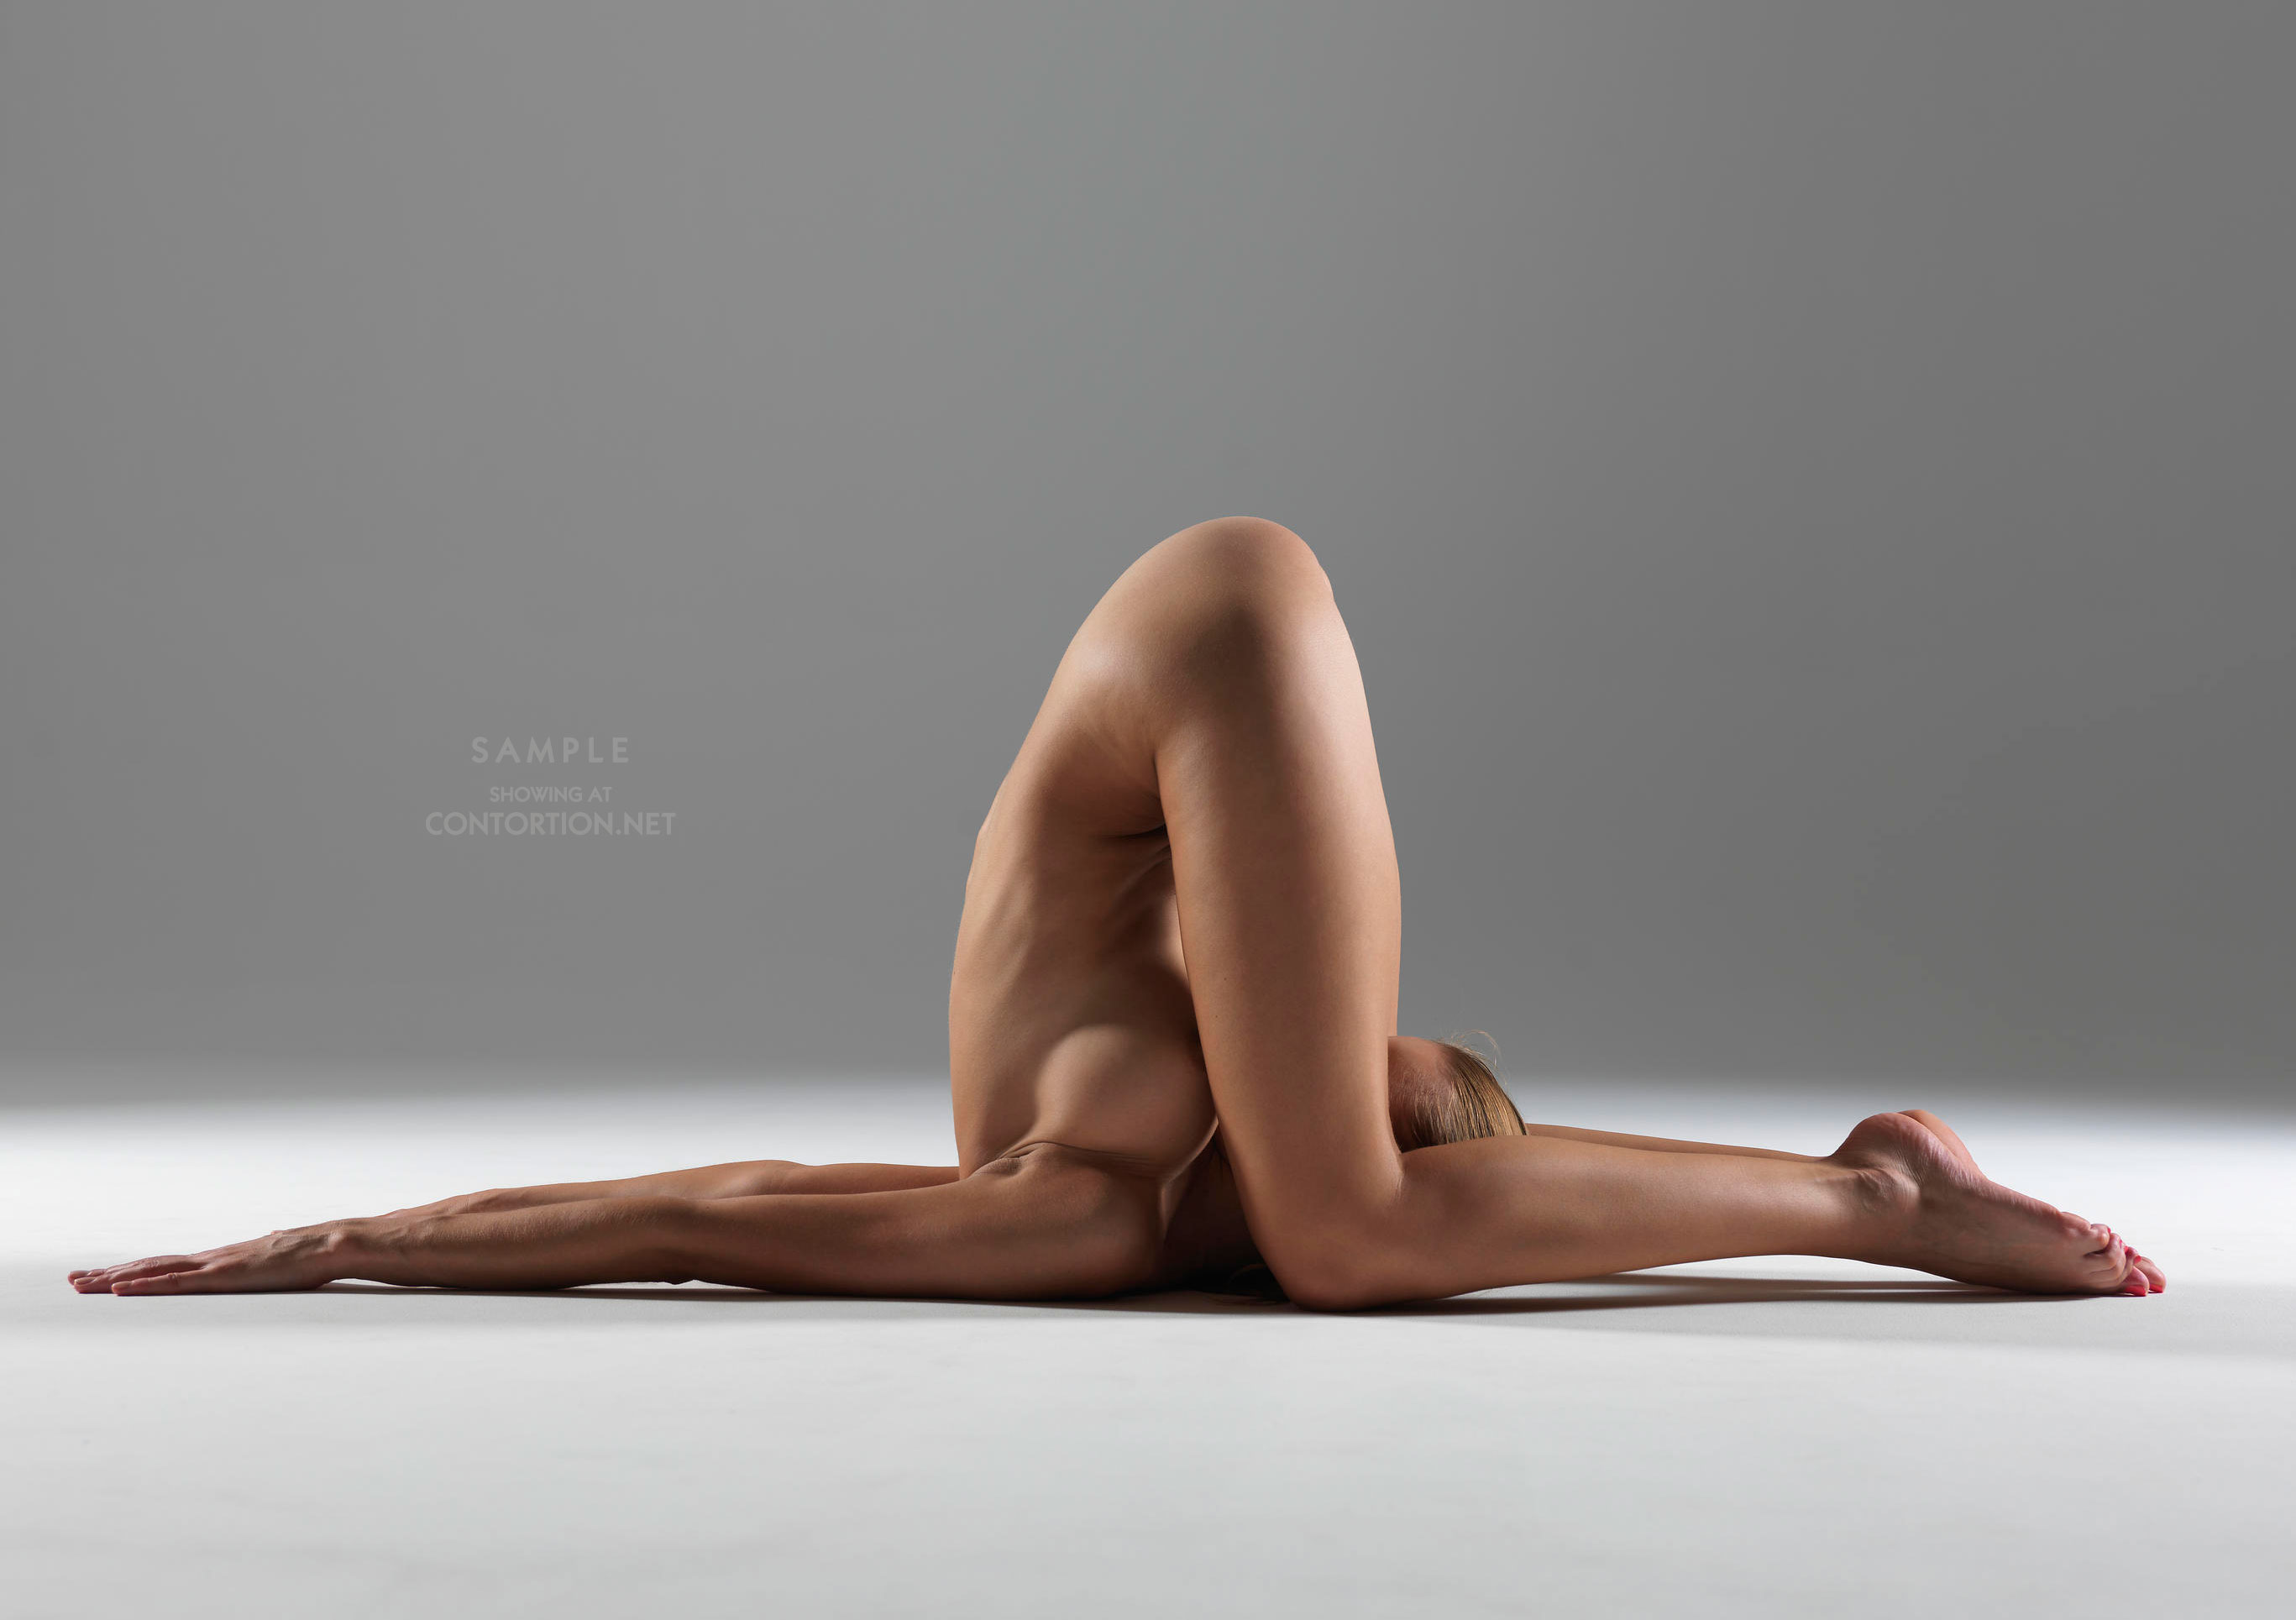 Hd yoga girls nude full